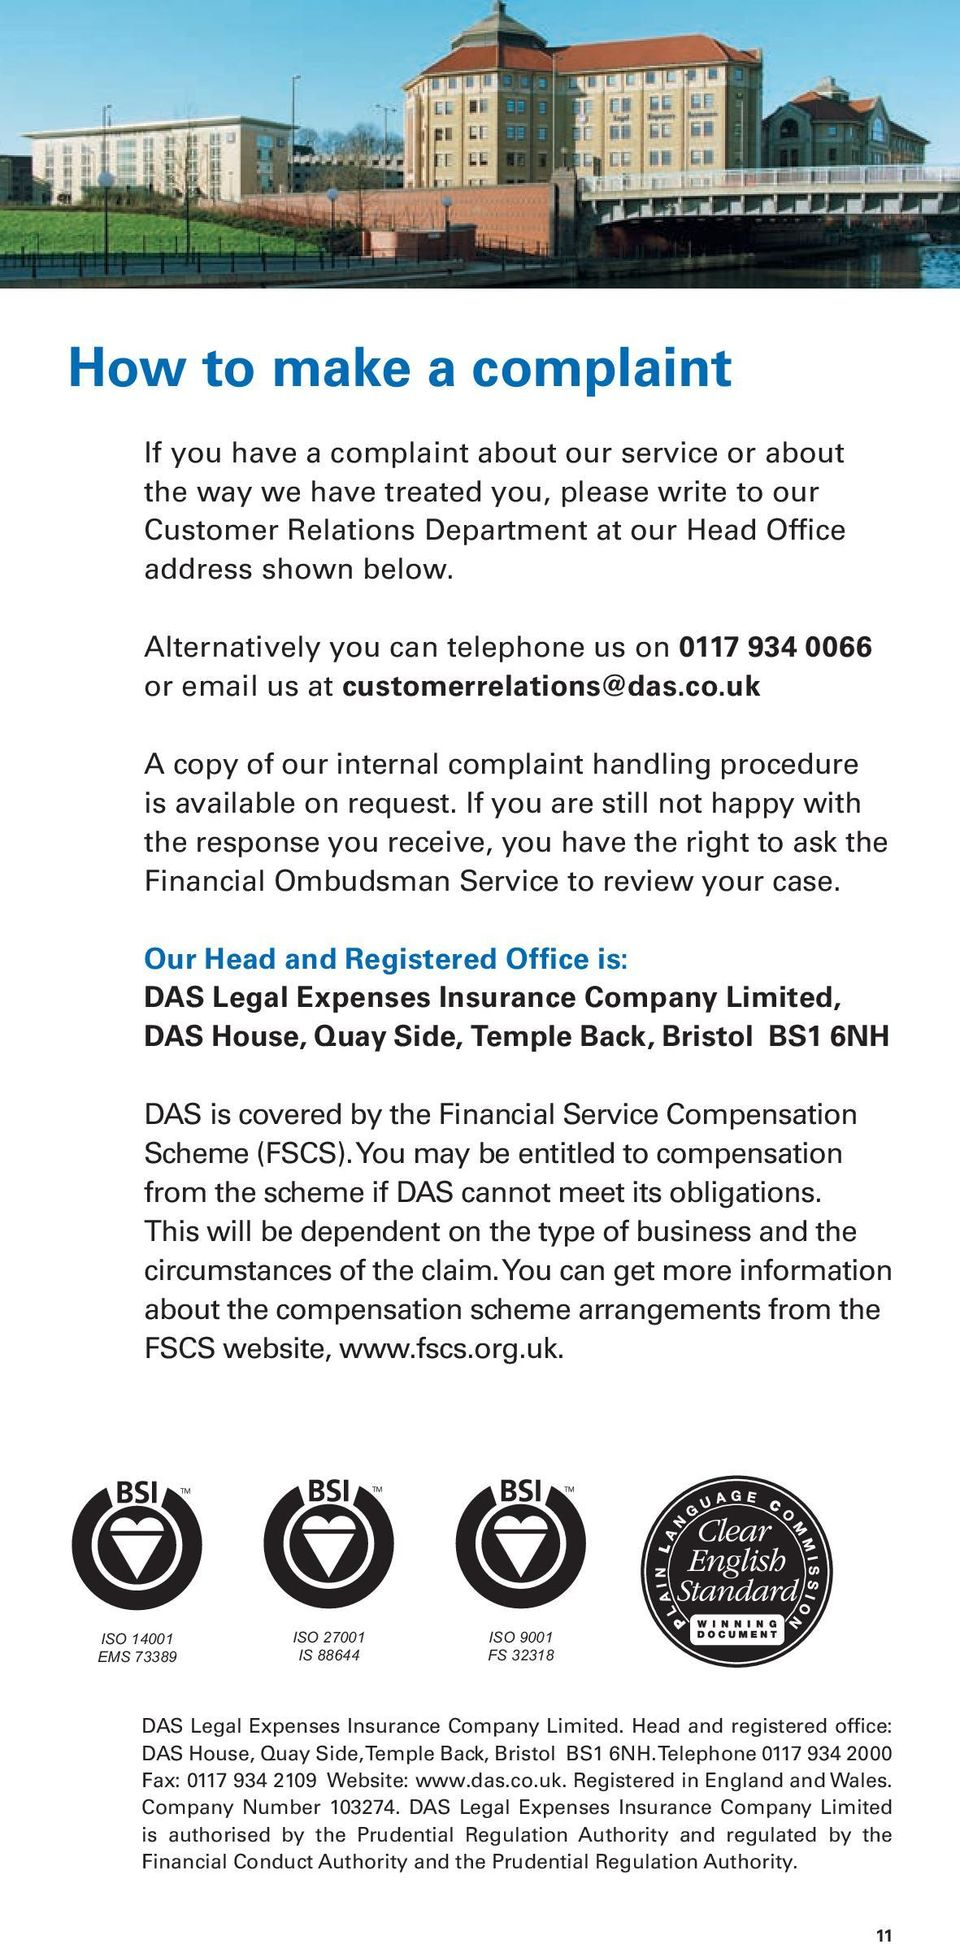 If you are still not happy with the response you receive, you have the right to ask the Financial Ombudsman Service to review your case.